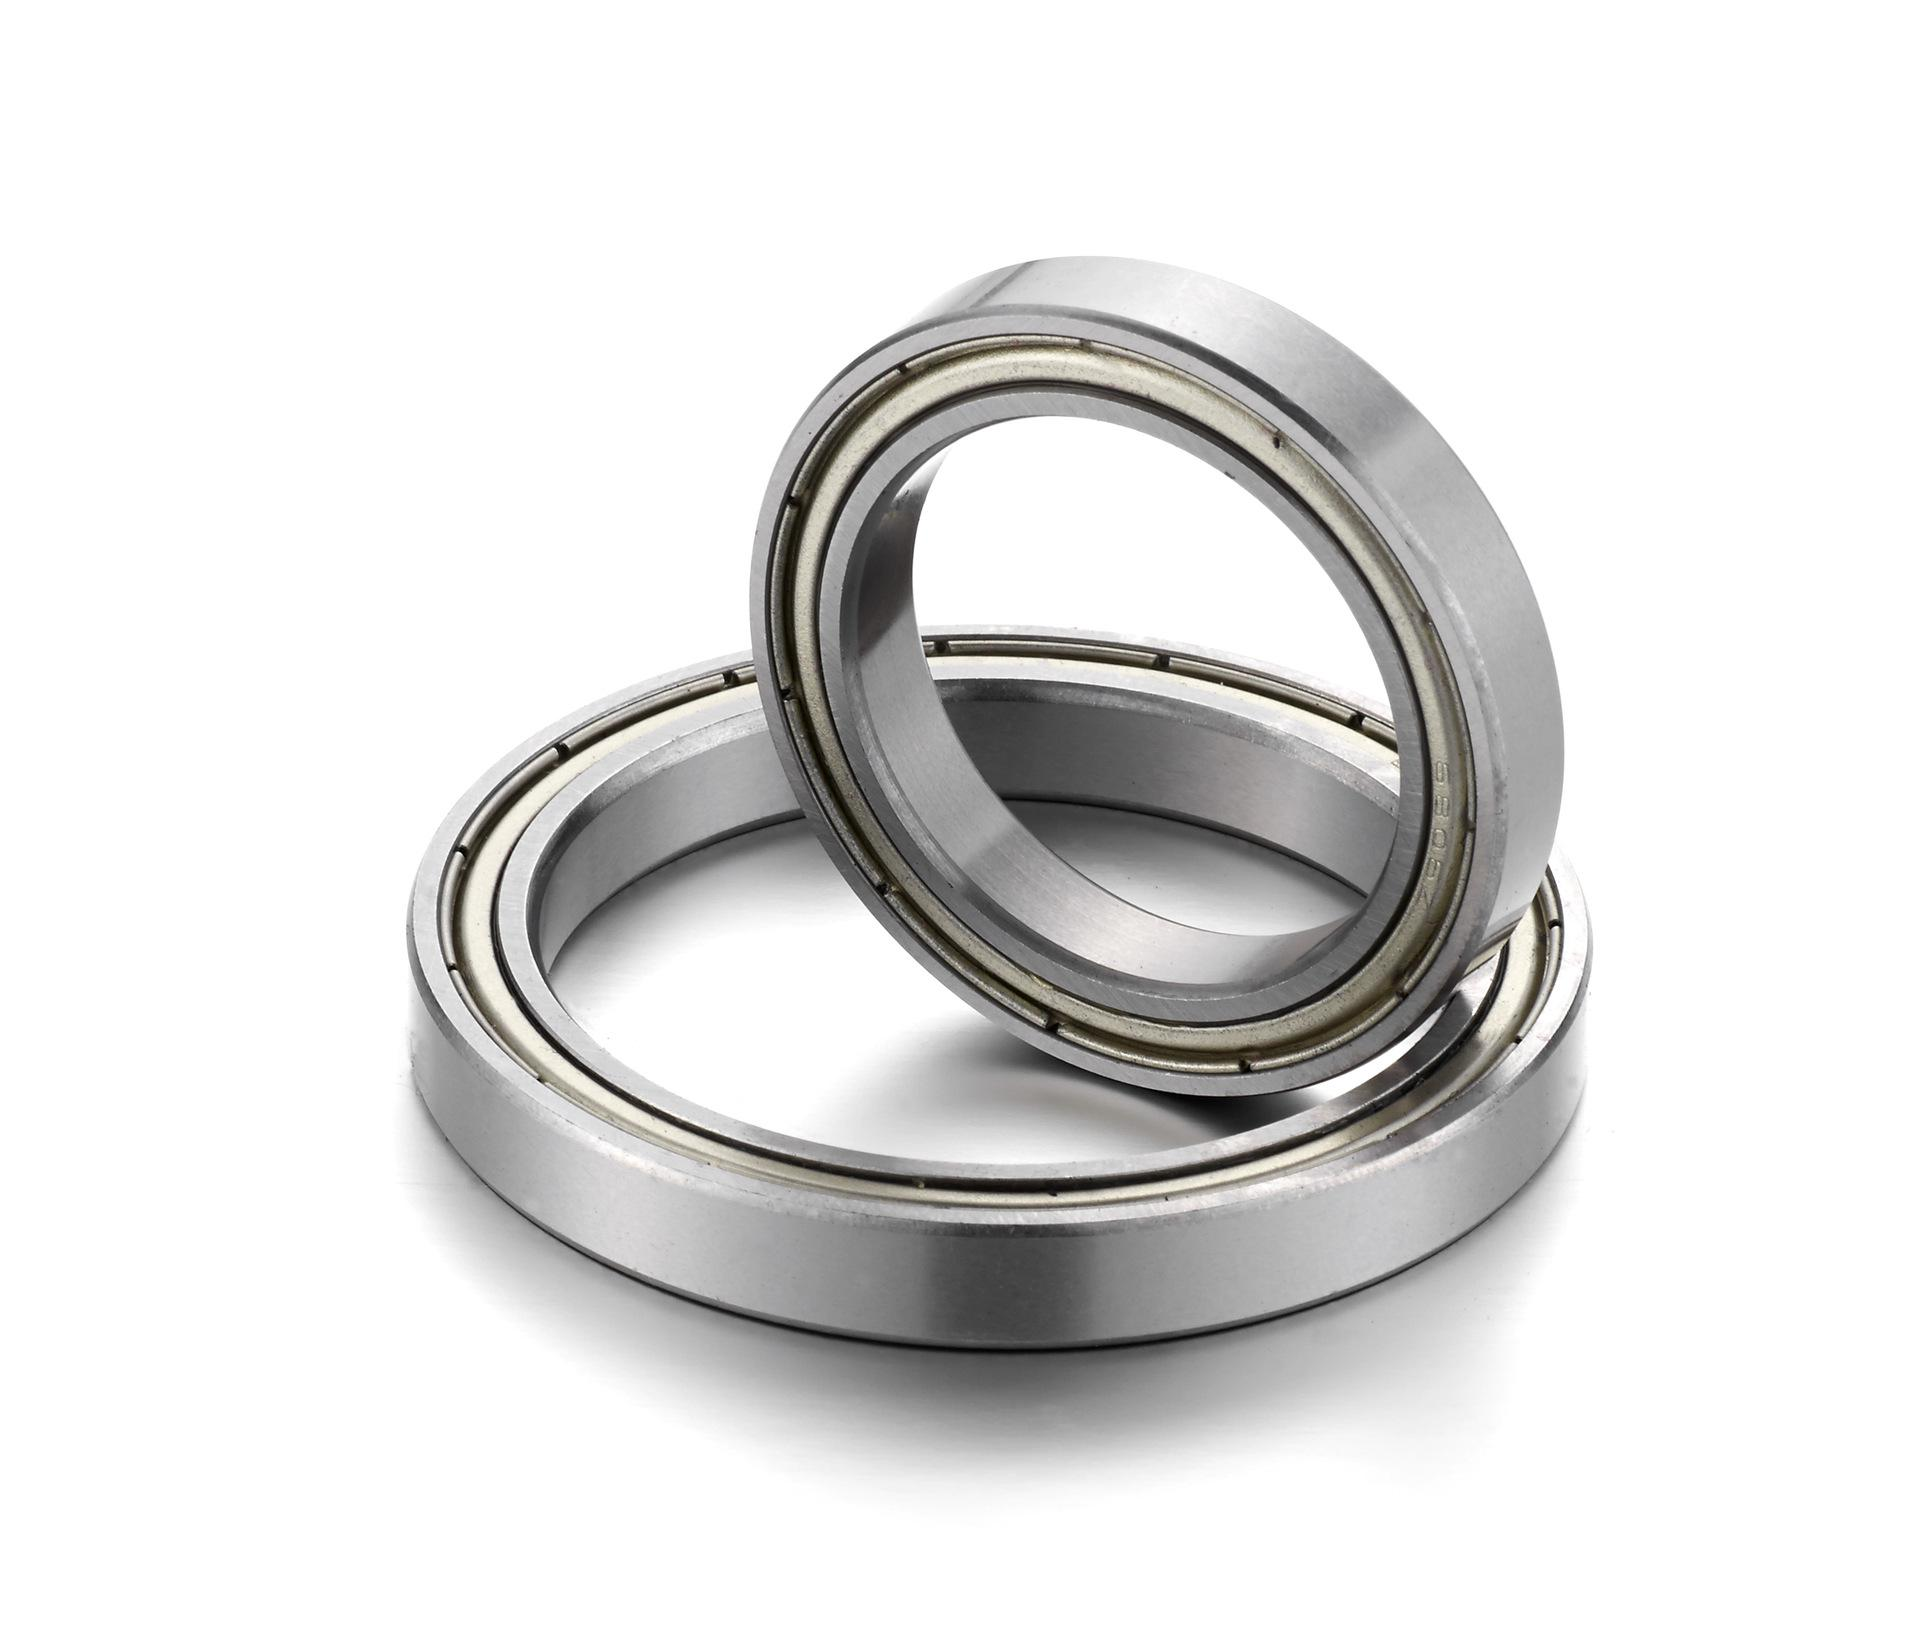 6826M ABEC-1  130x165x18mm Metric Thin Section Bearings  Brass cage 61826M 1pcs 71822 71822cd p4 7822 110x140x16 mochu thin walled miniature angular contact bearings speed spindle bearings cnc abec 7